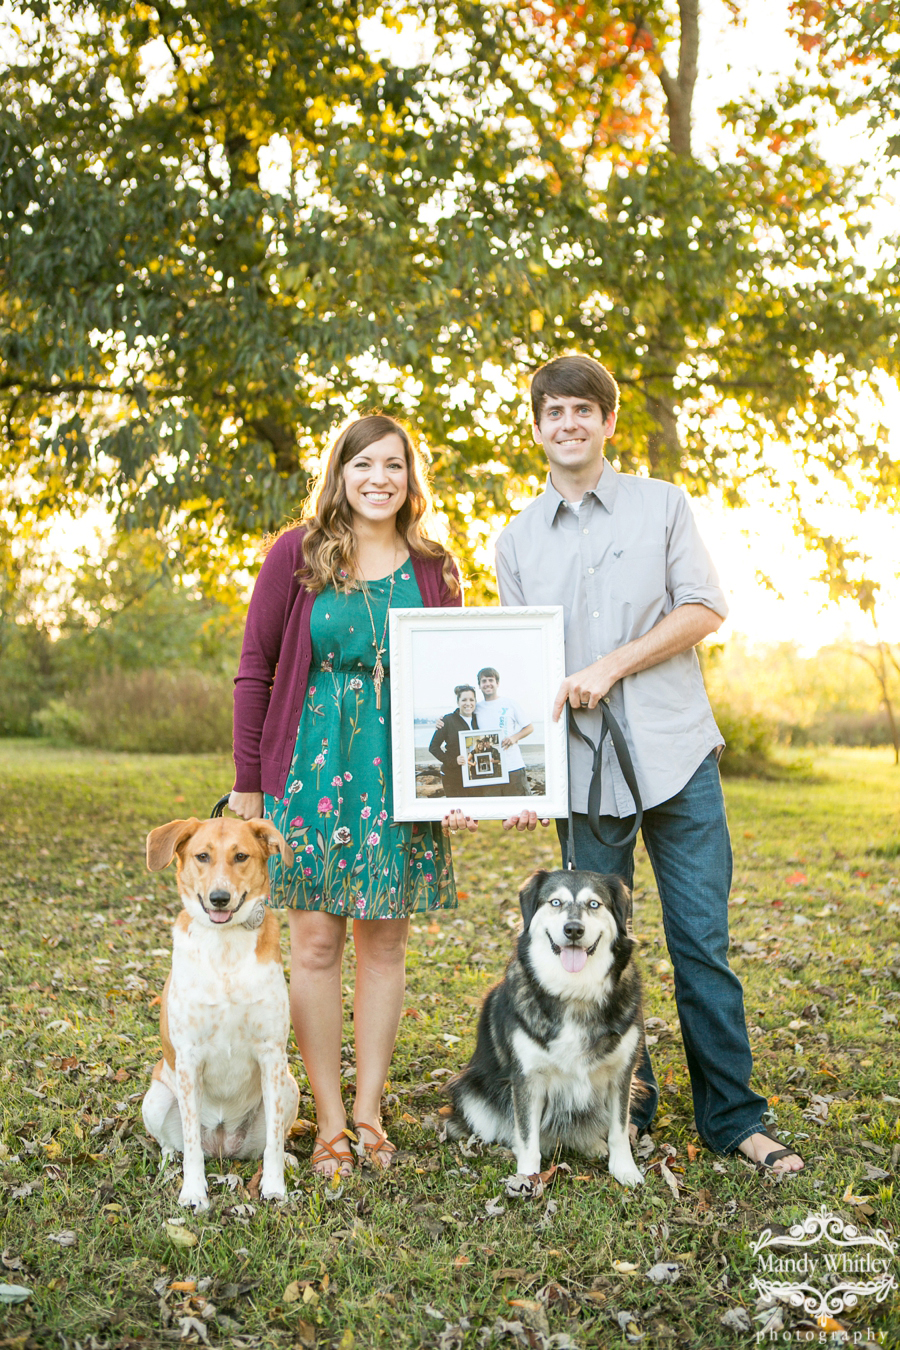 Nashville Family Pet Photographer | Mandy Whitley Photography